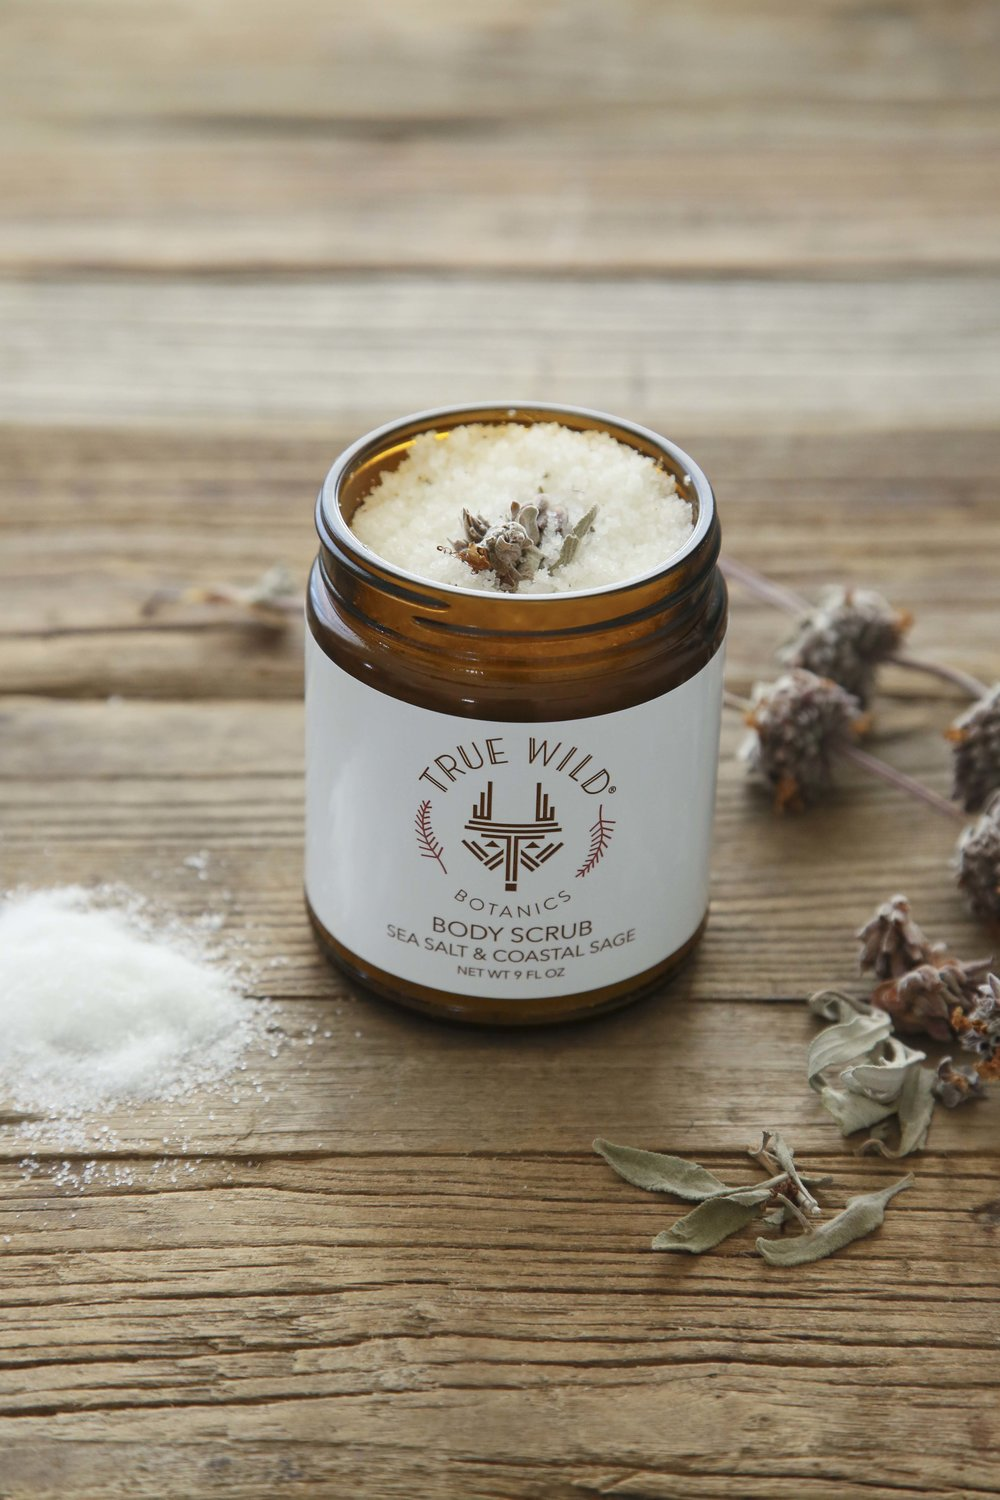 We are proud of our Sea Salt & Coastal Sage Body Scrub for making an appearance in the  Eco Chic feature of The Seattle Times.